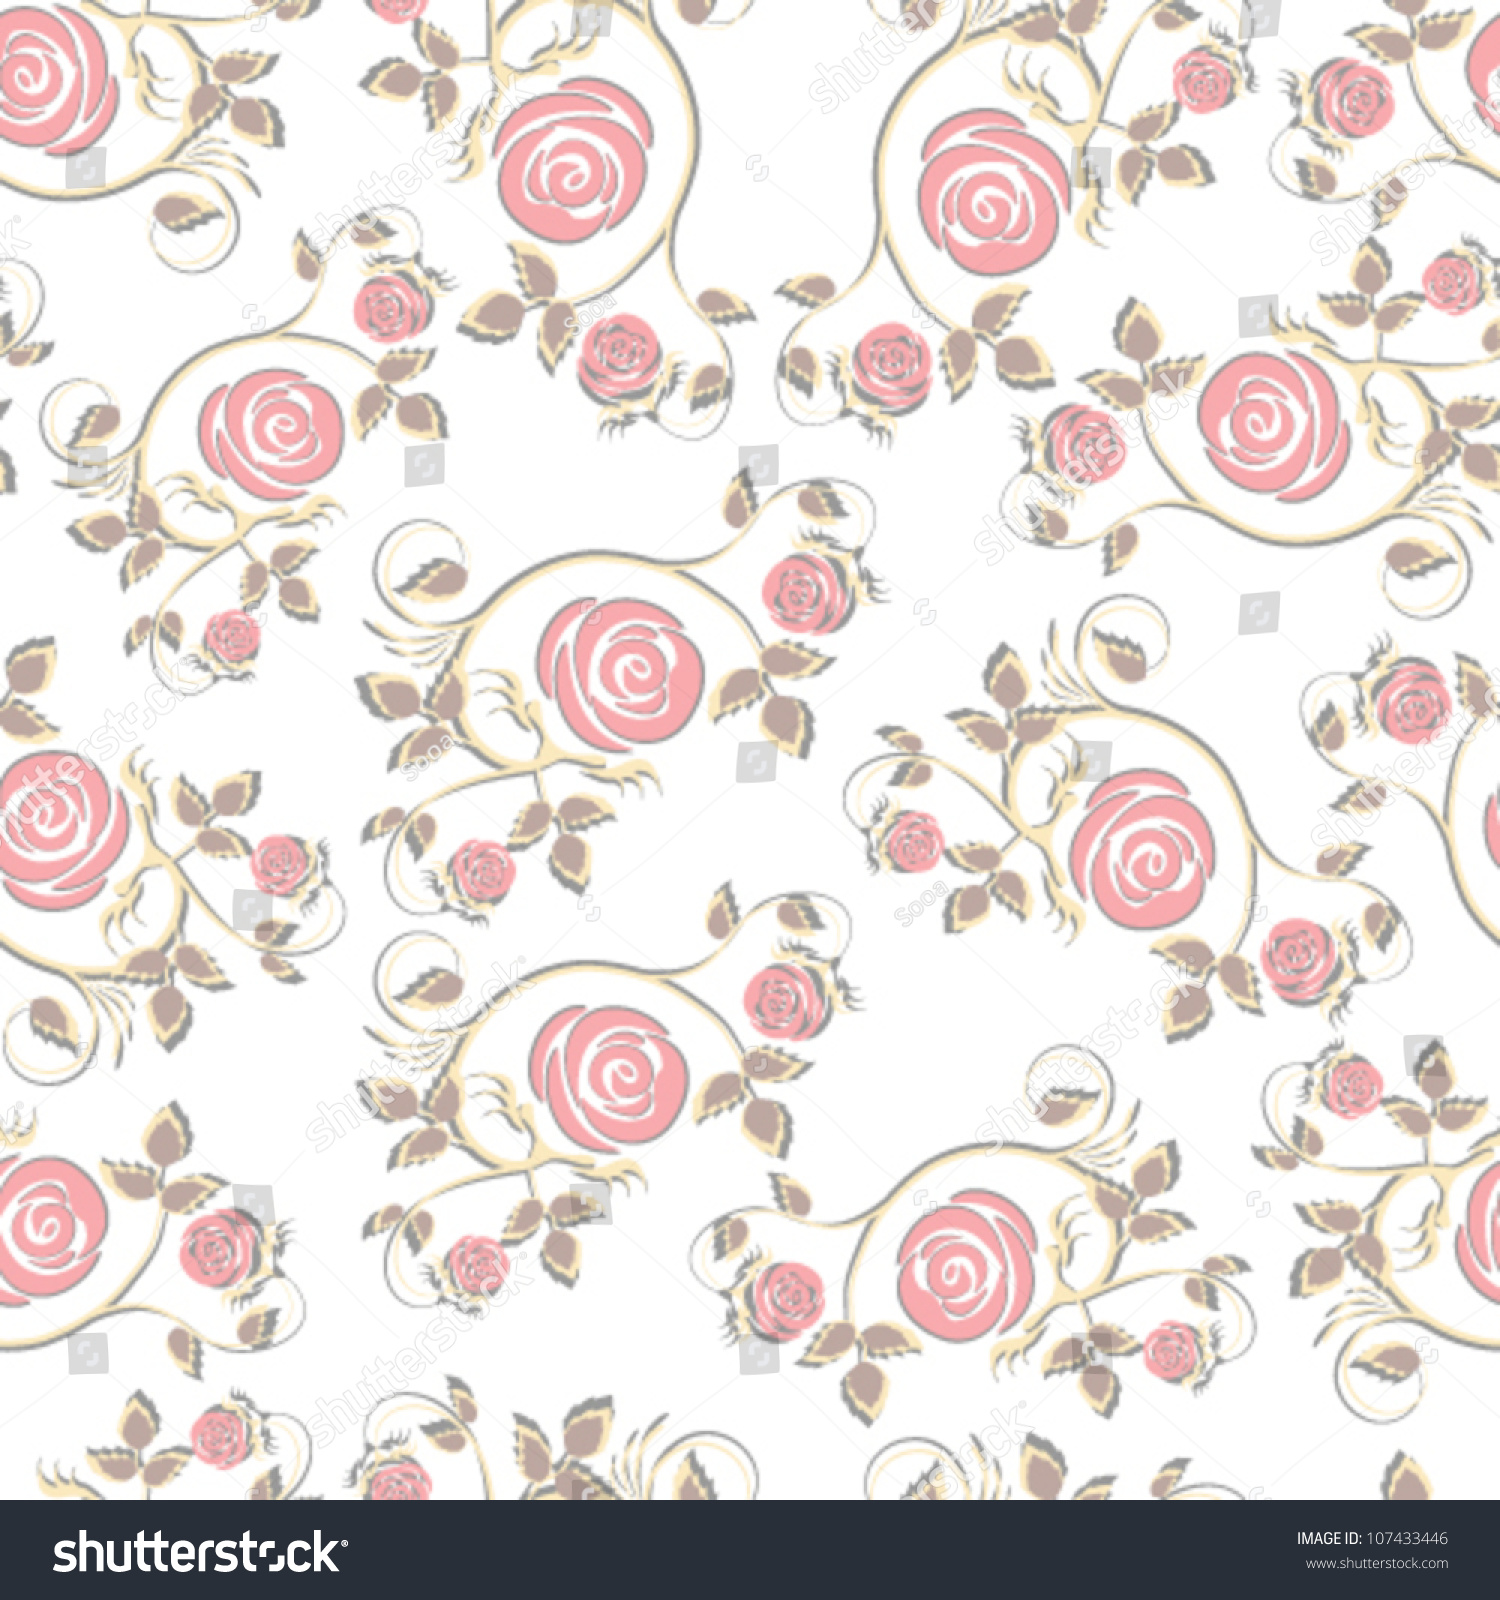 Rose floral pattern wallpaper